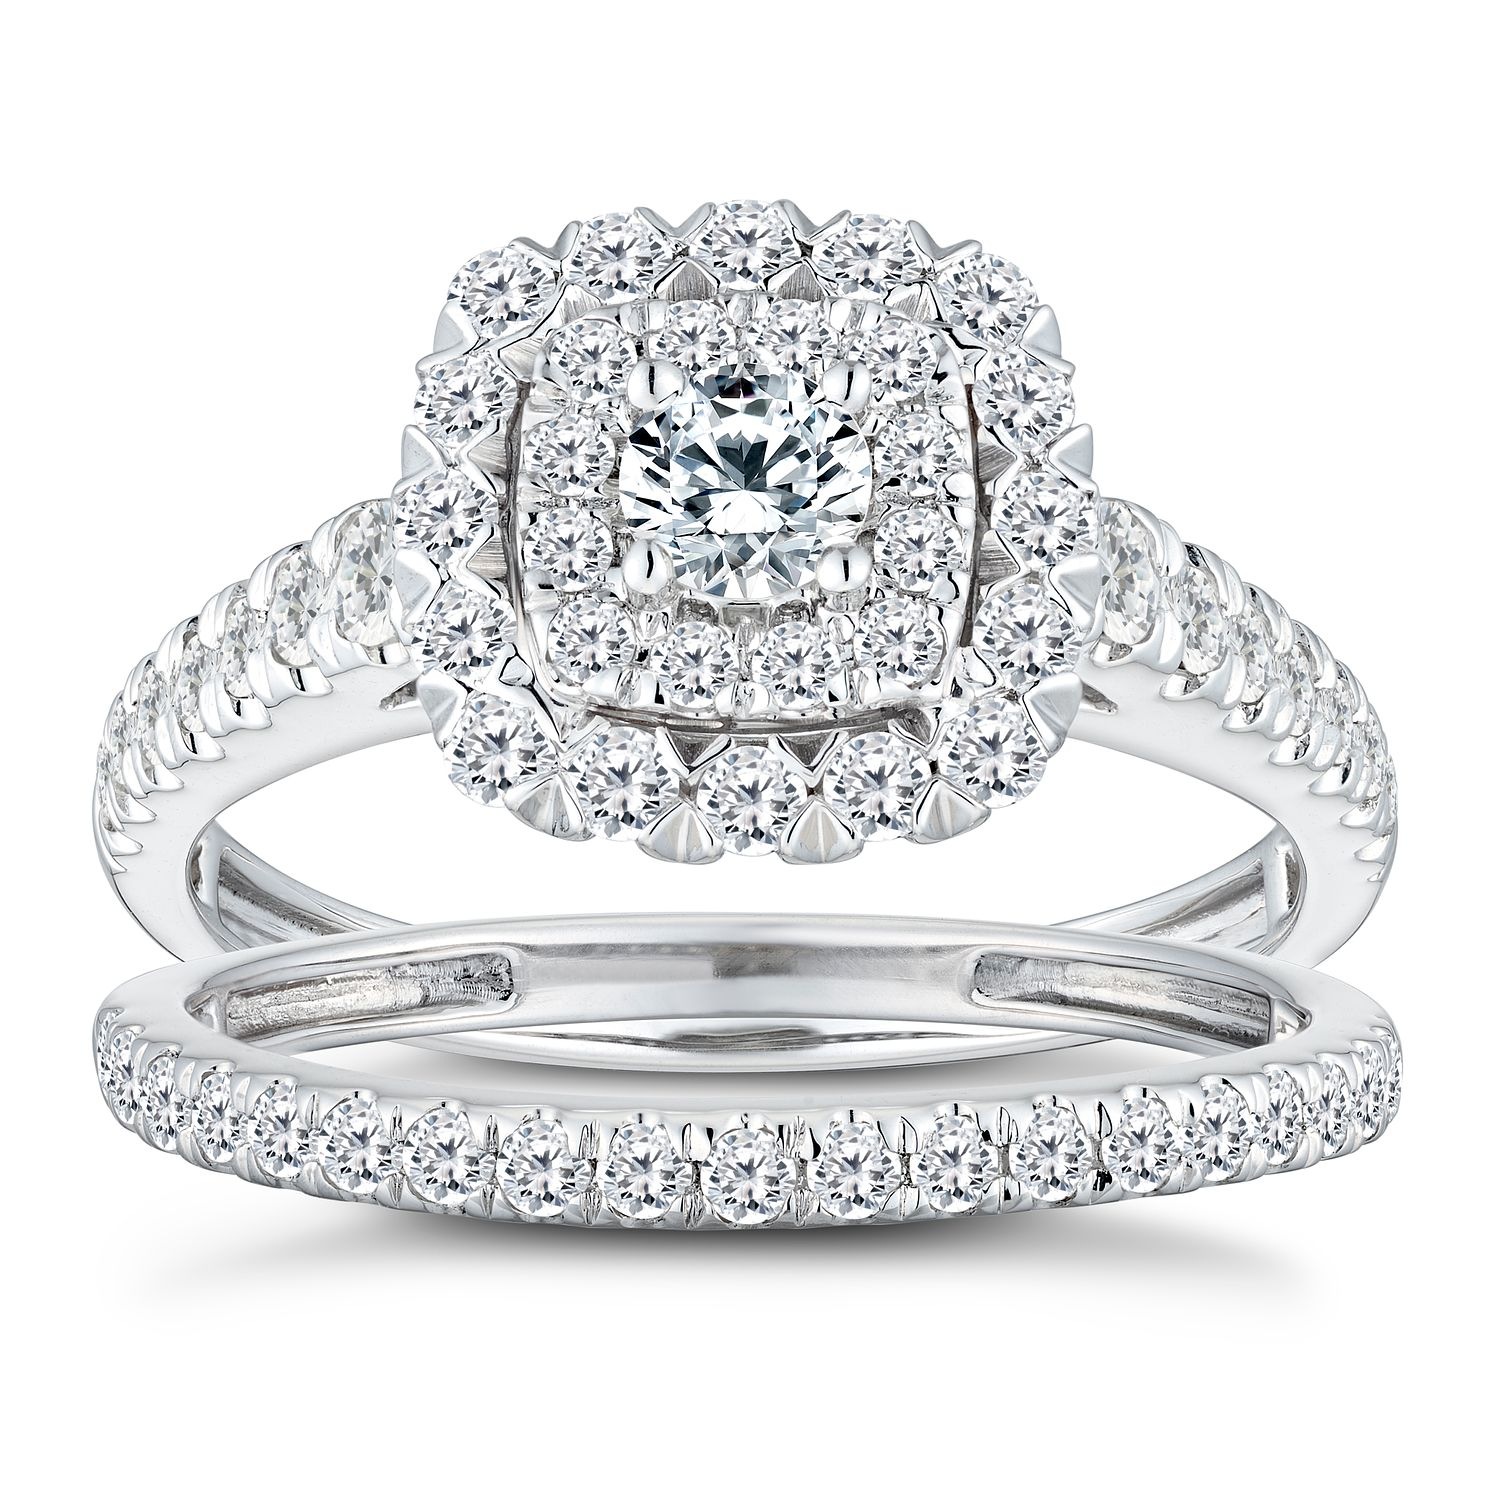 18ct White Gold 1ct Diamond Cushion Bridal Ring Set - Product number 2827867